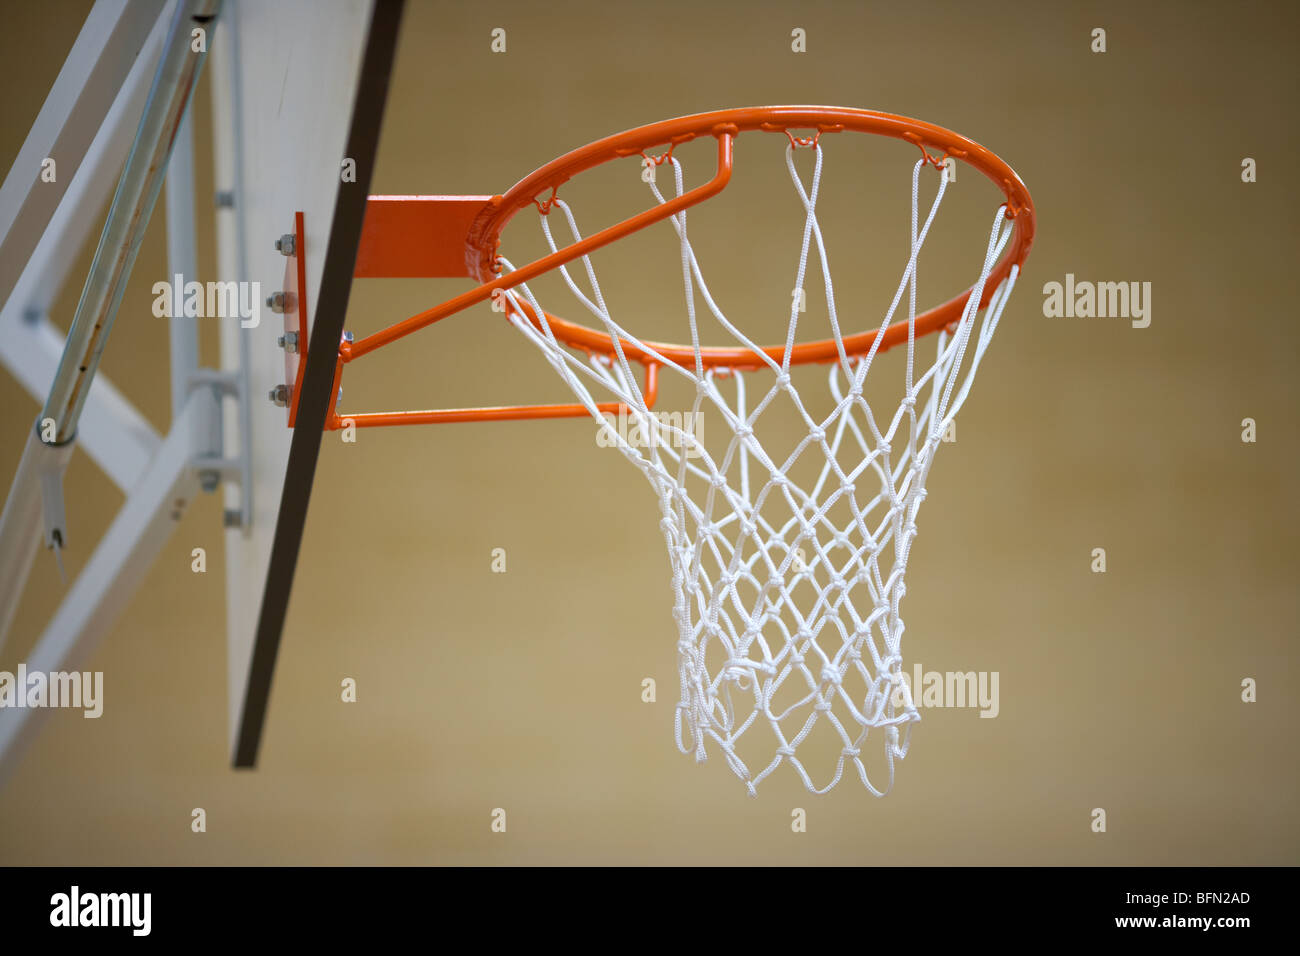 basketball net and frame in a school gym sports hall low angle selective focus - Stock Image